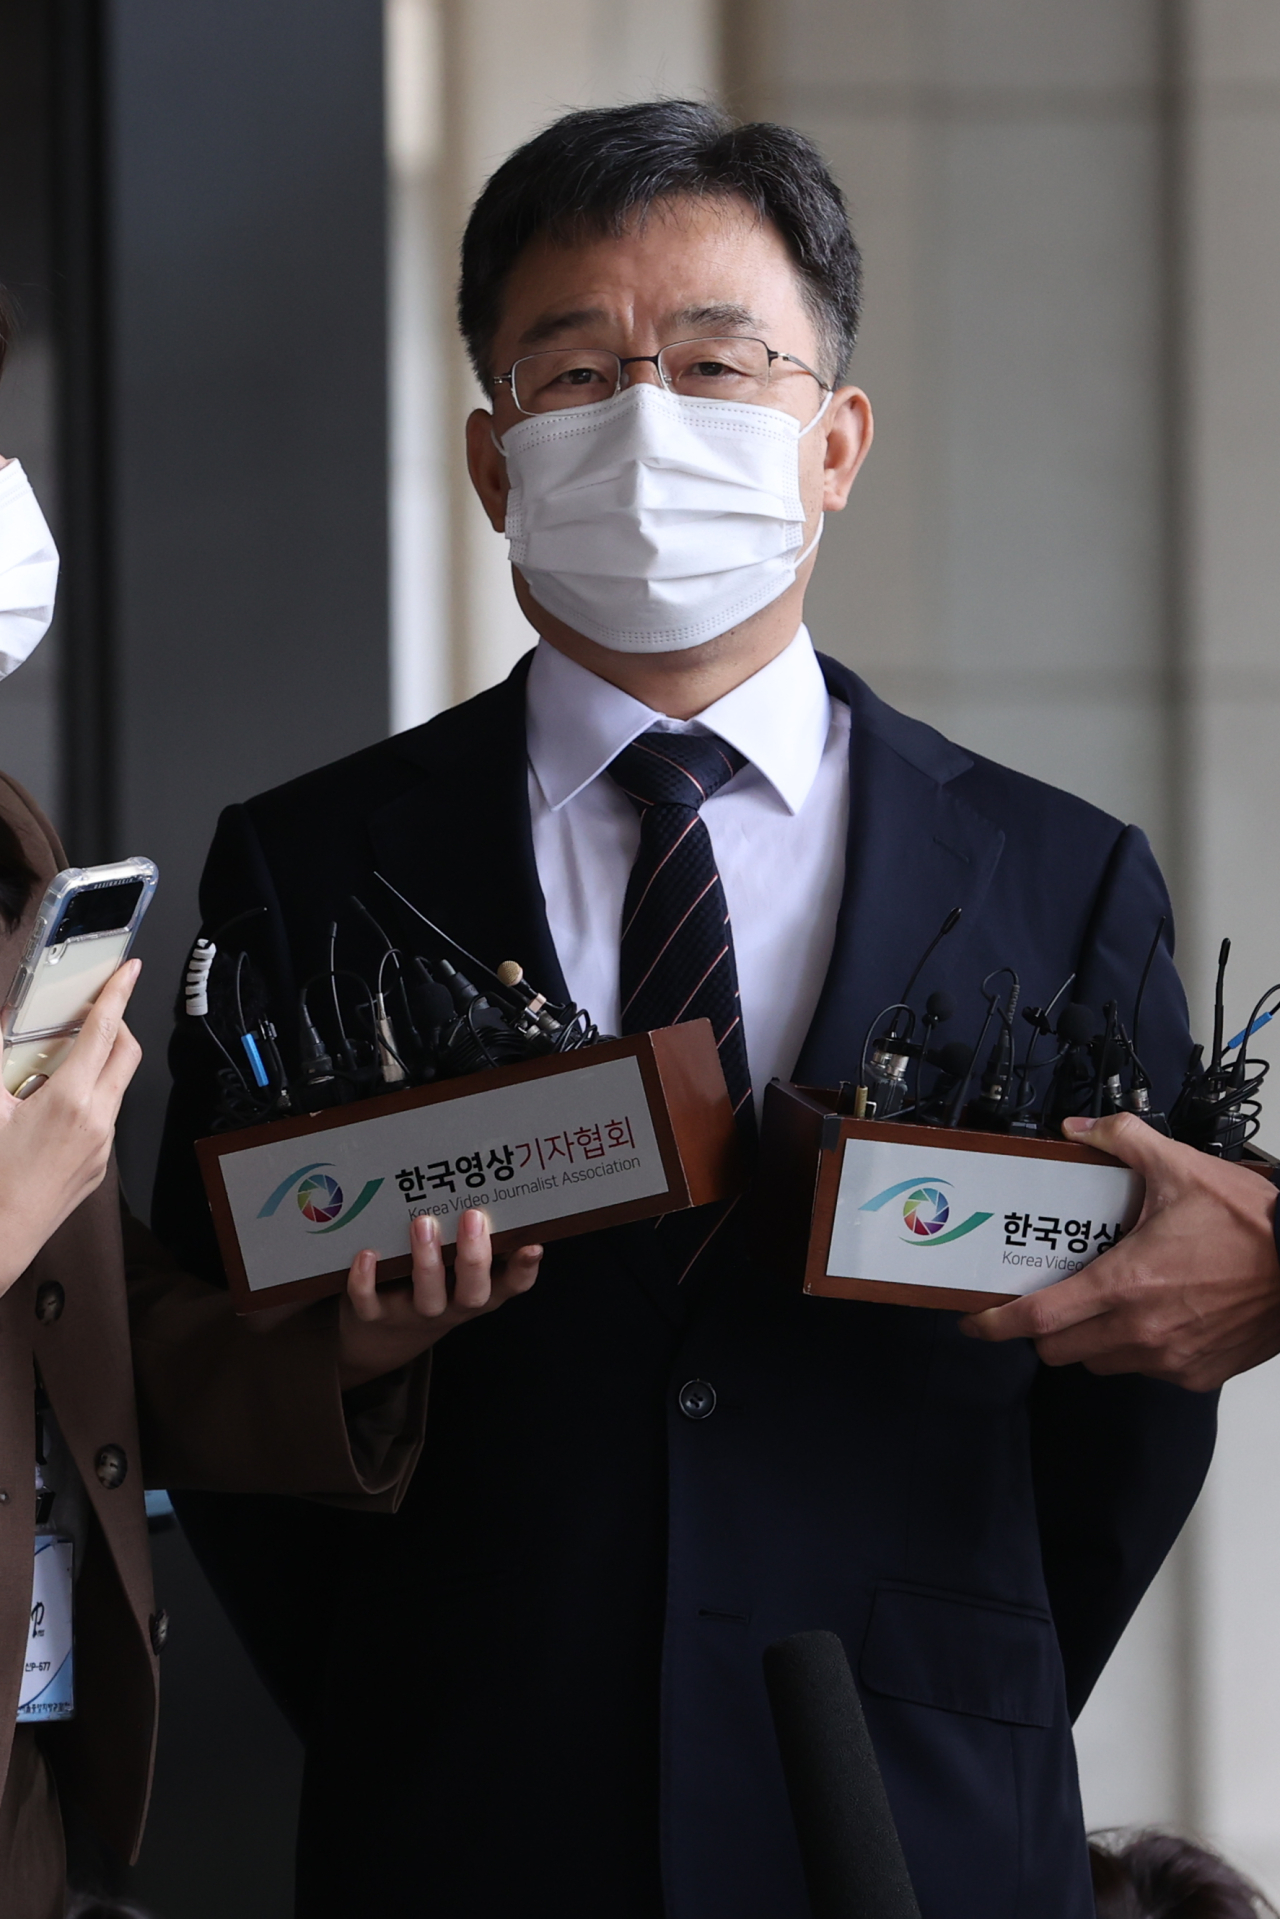 Kim Man-bae, owner of asset management firm, Hwacheon Daeyu, speaks to reporters after arriving at the Seoul Central District Prosecutors' Office on Monday, for questioning. (Yonhap)